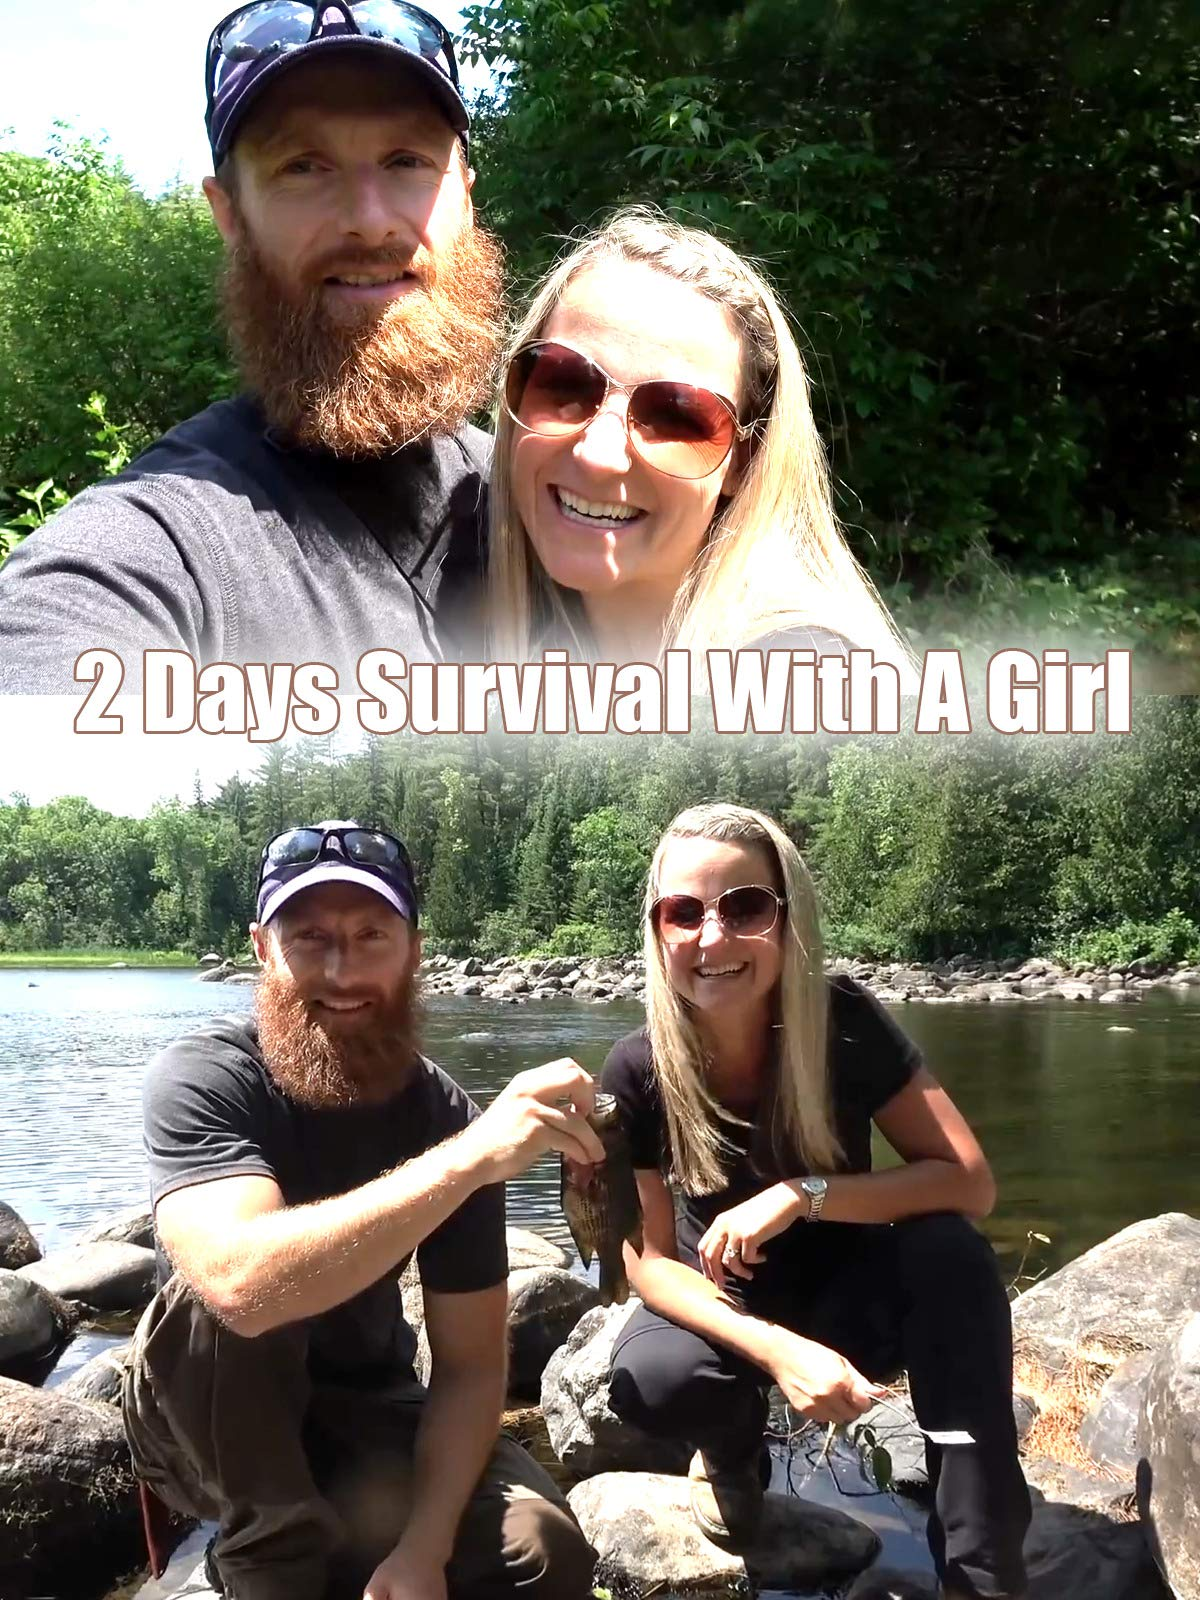 2 Days Survival With A Girl